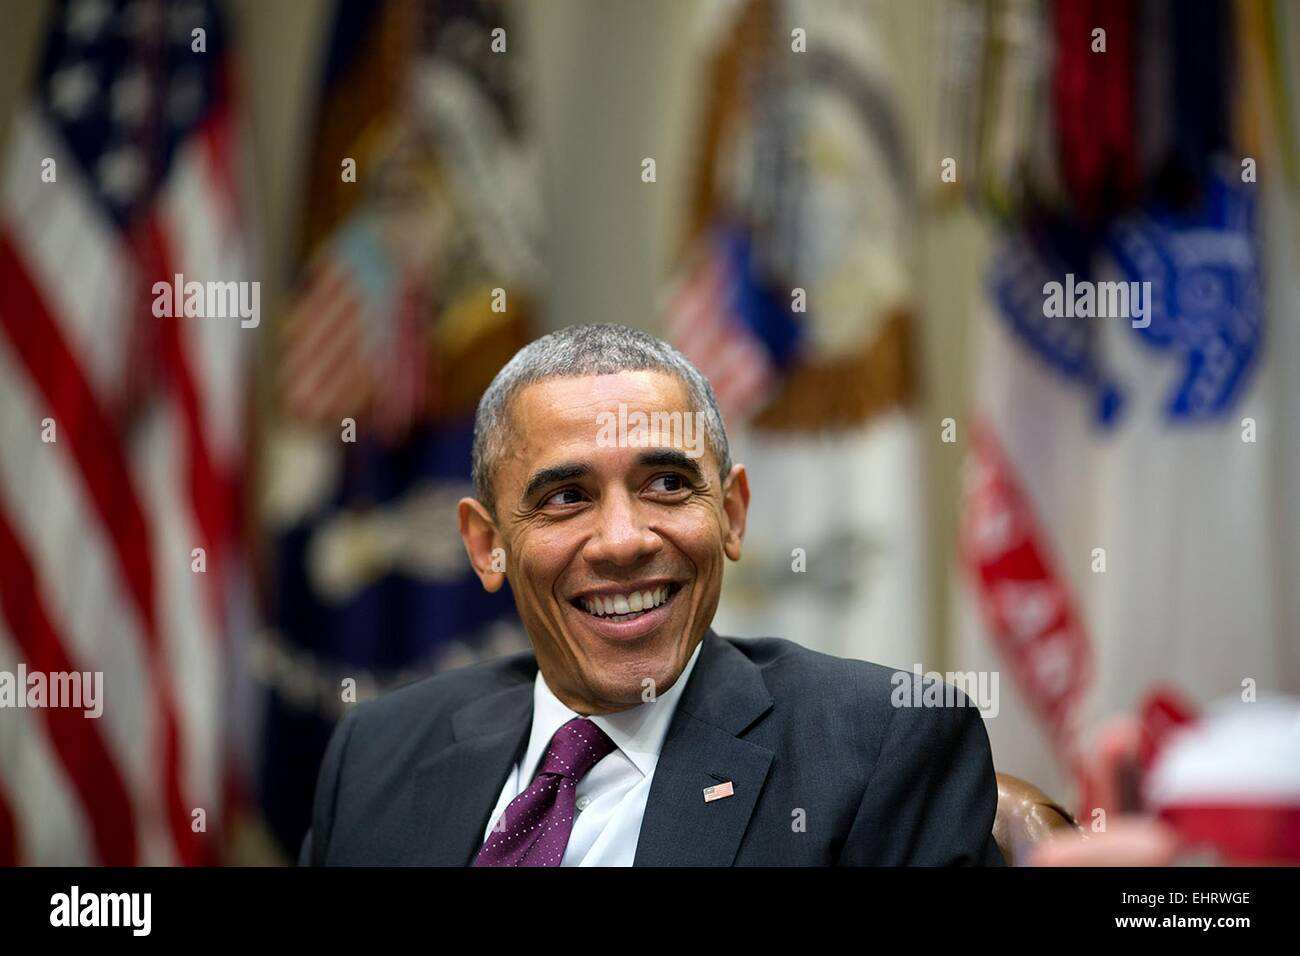 US President Barack Obama laughs during a meeting in the Roosevelt Room of the White House November 17, 2014 in - Stock Image